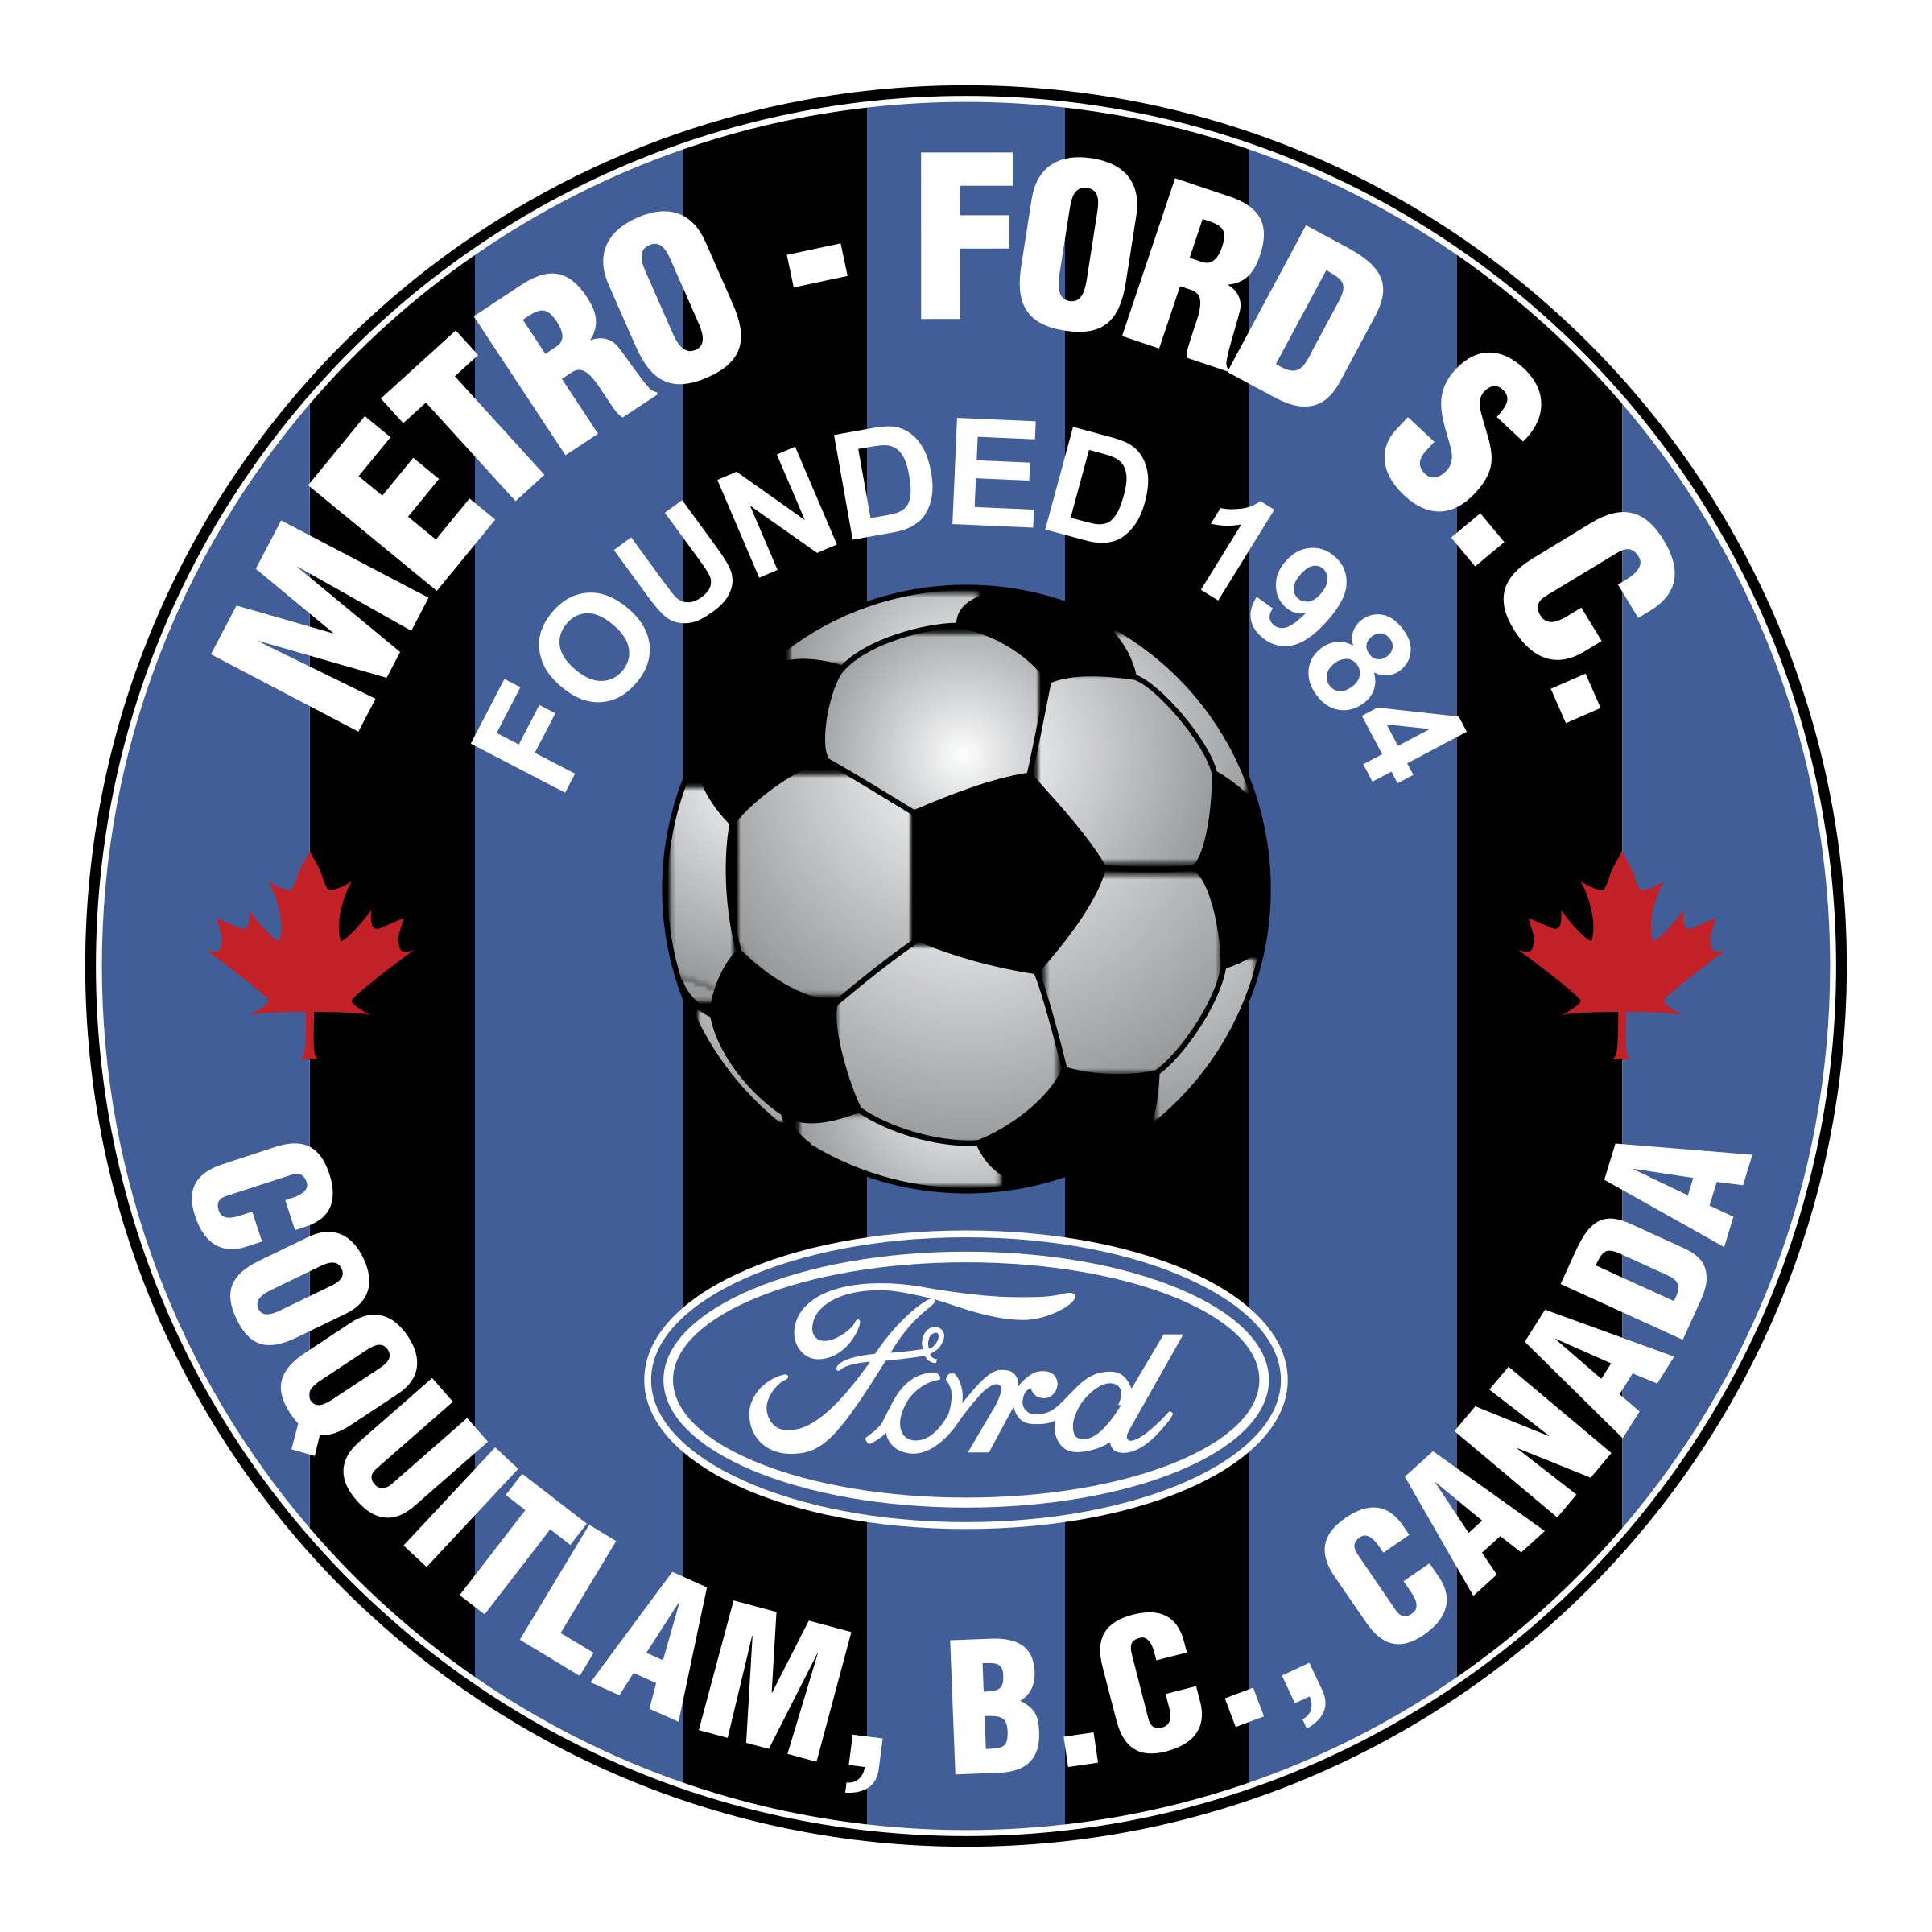 Metro Ford Logo PNG Transparent & SVG Vector - Freebie Supply